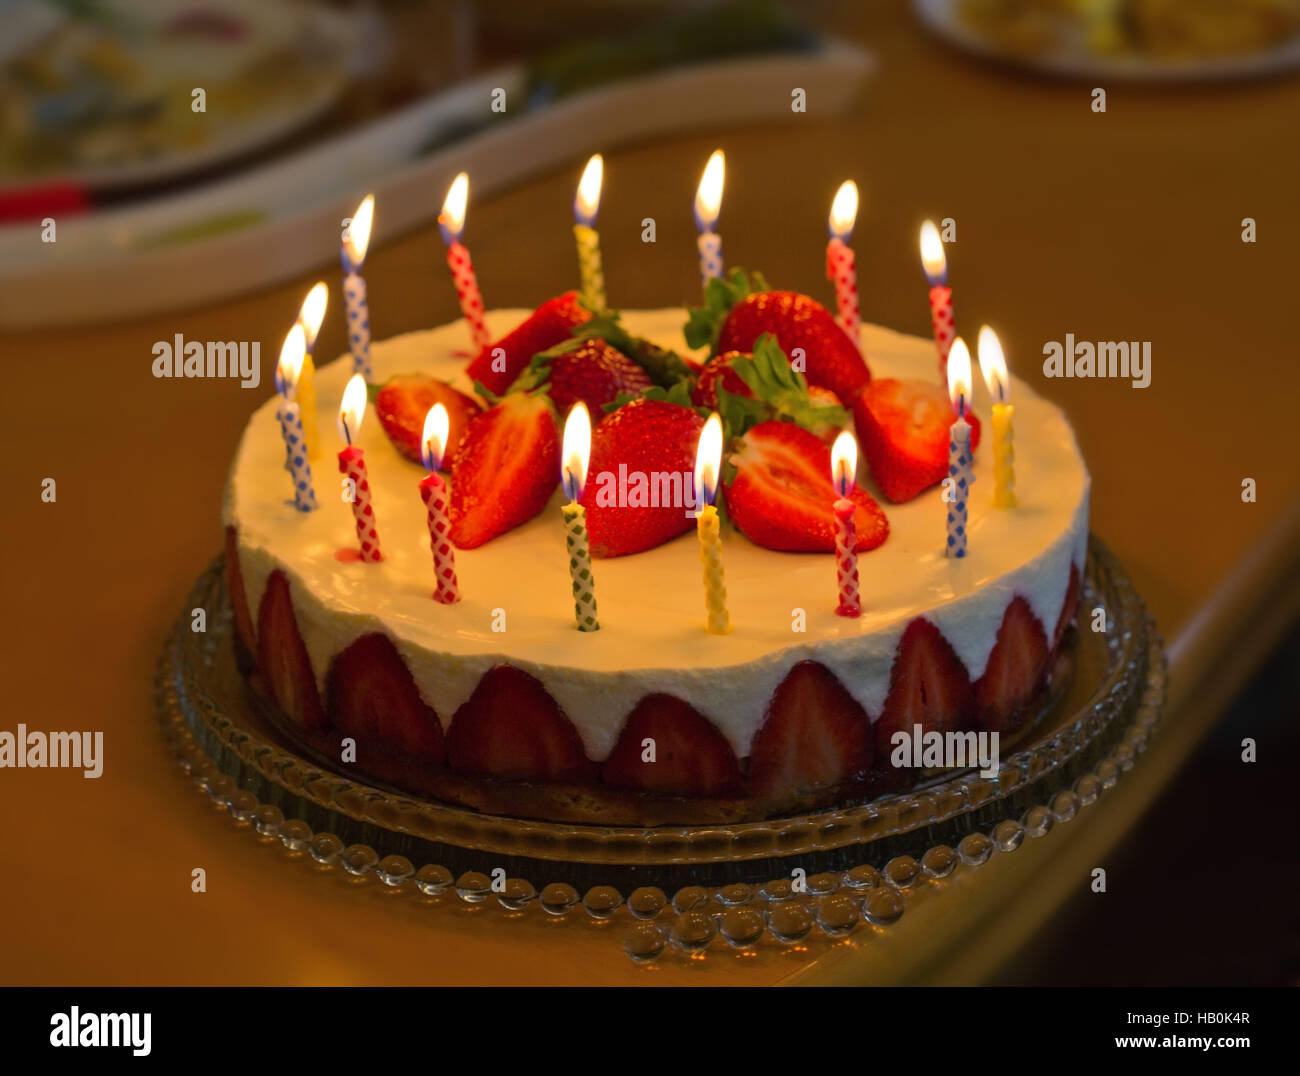 Strawberry Birthday Cake With Candles